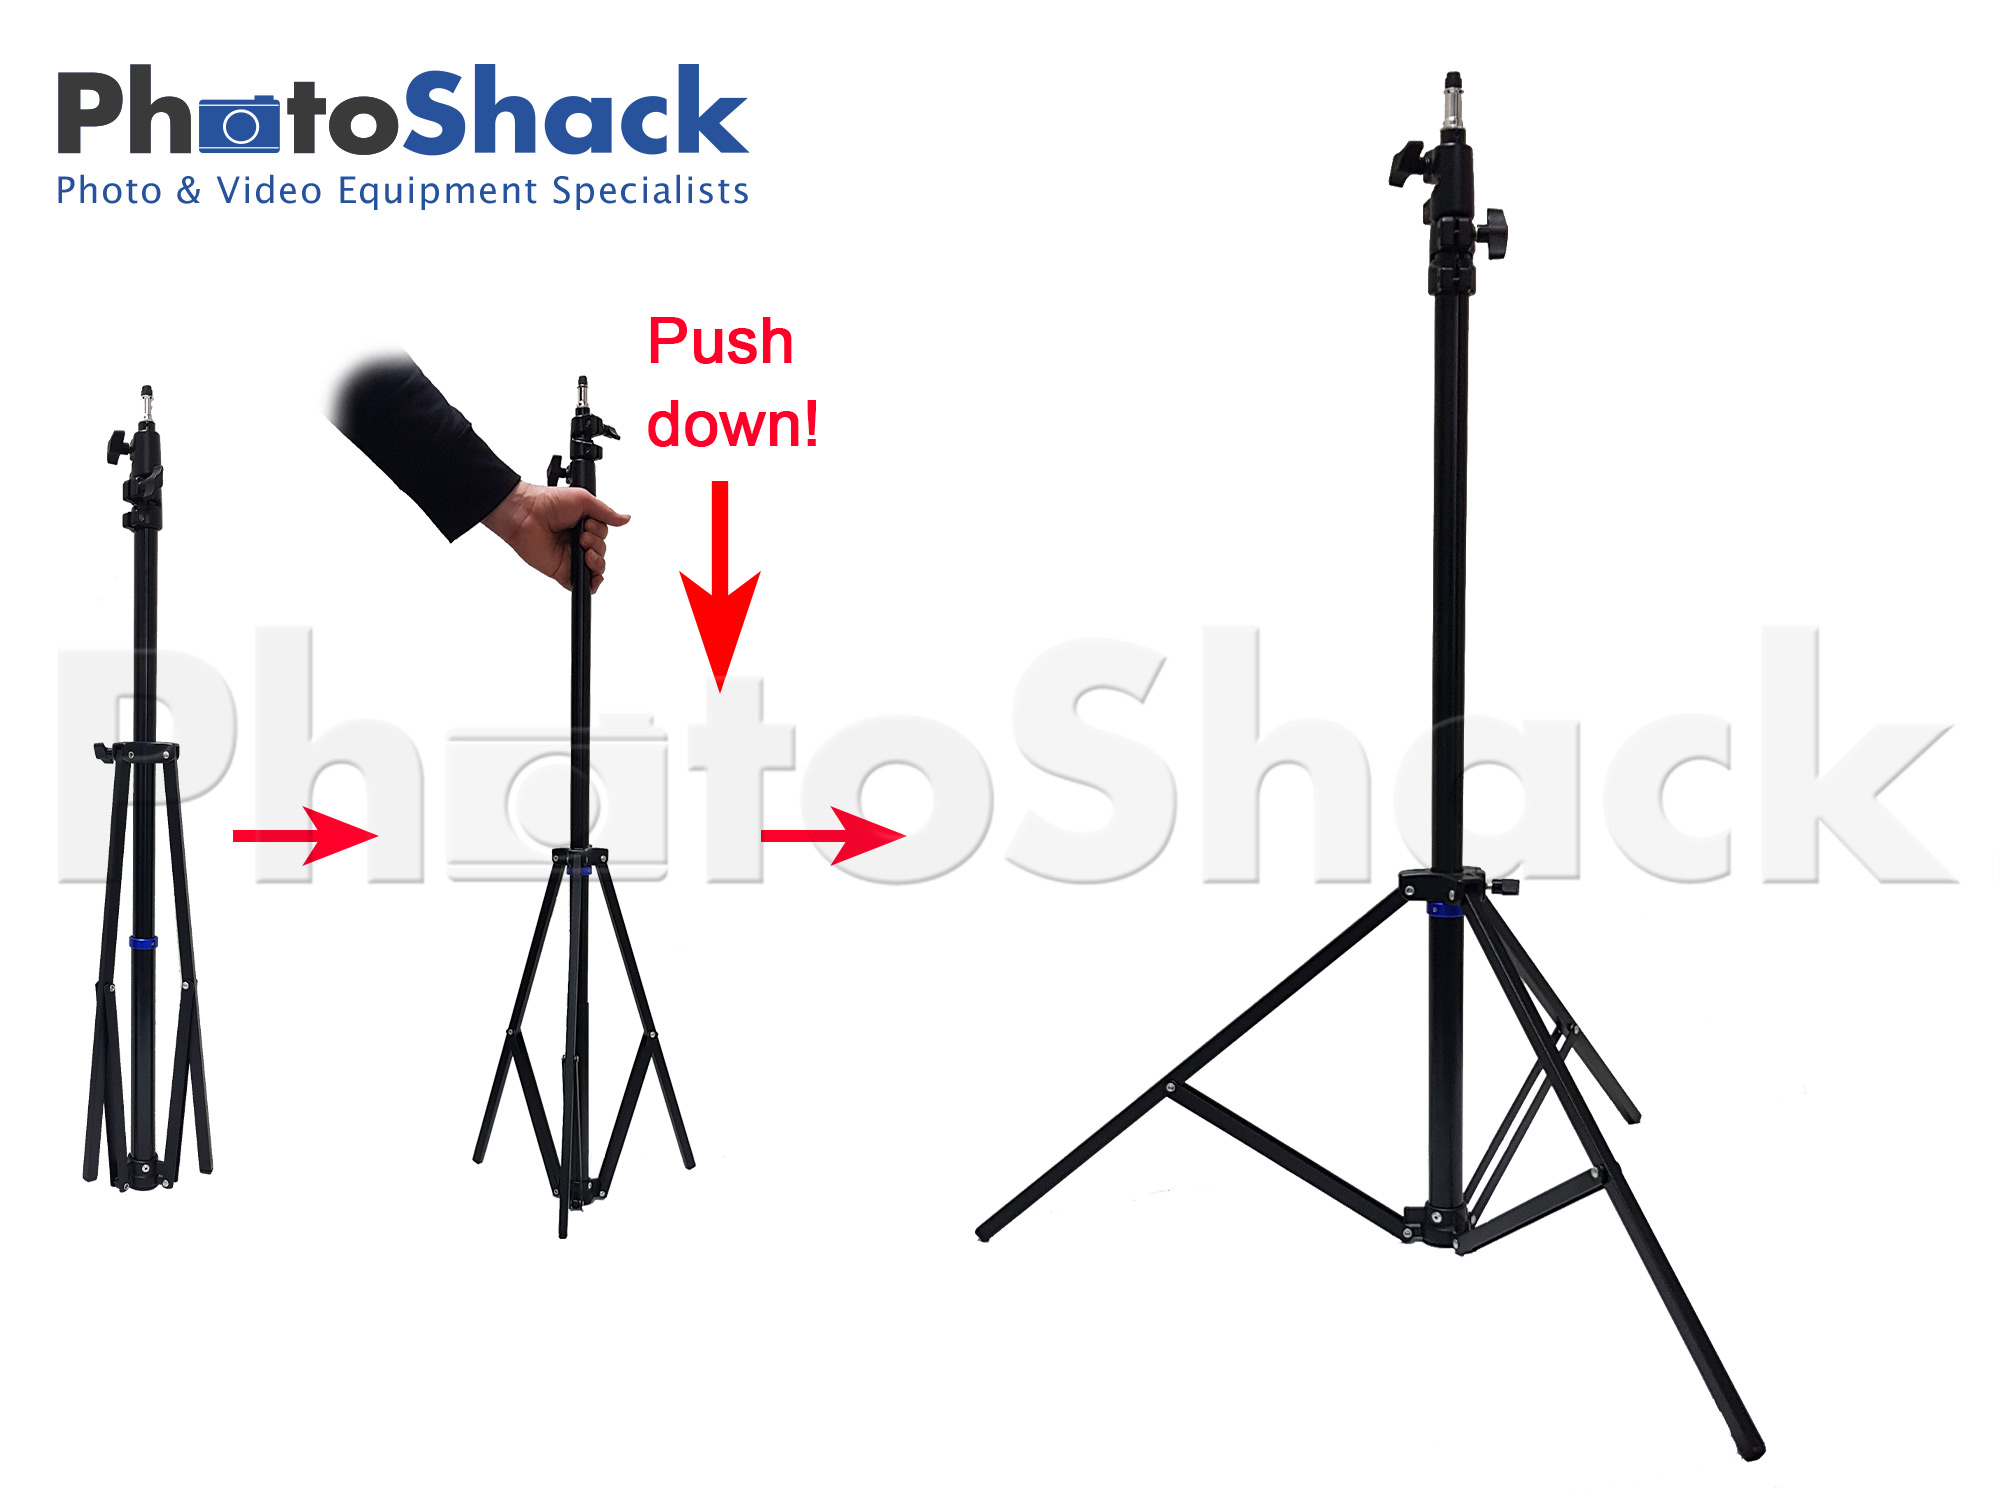 LK-2400 Auto-Extending Aluminium Light Stand